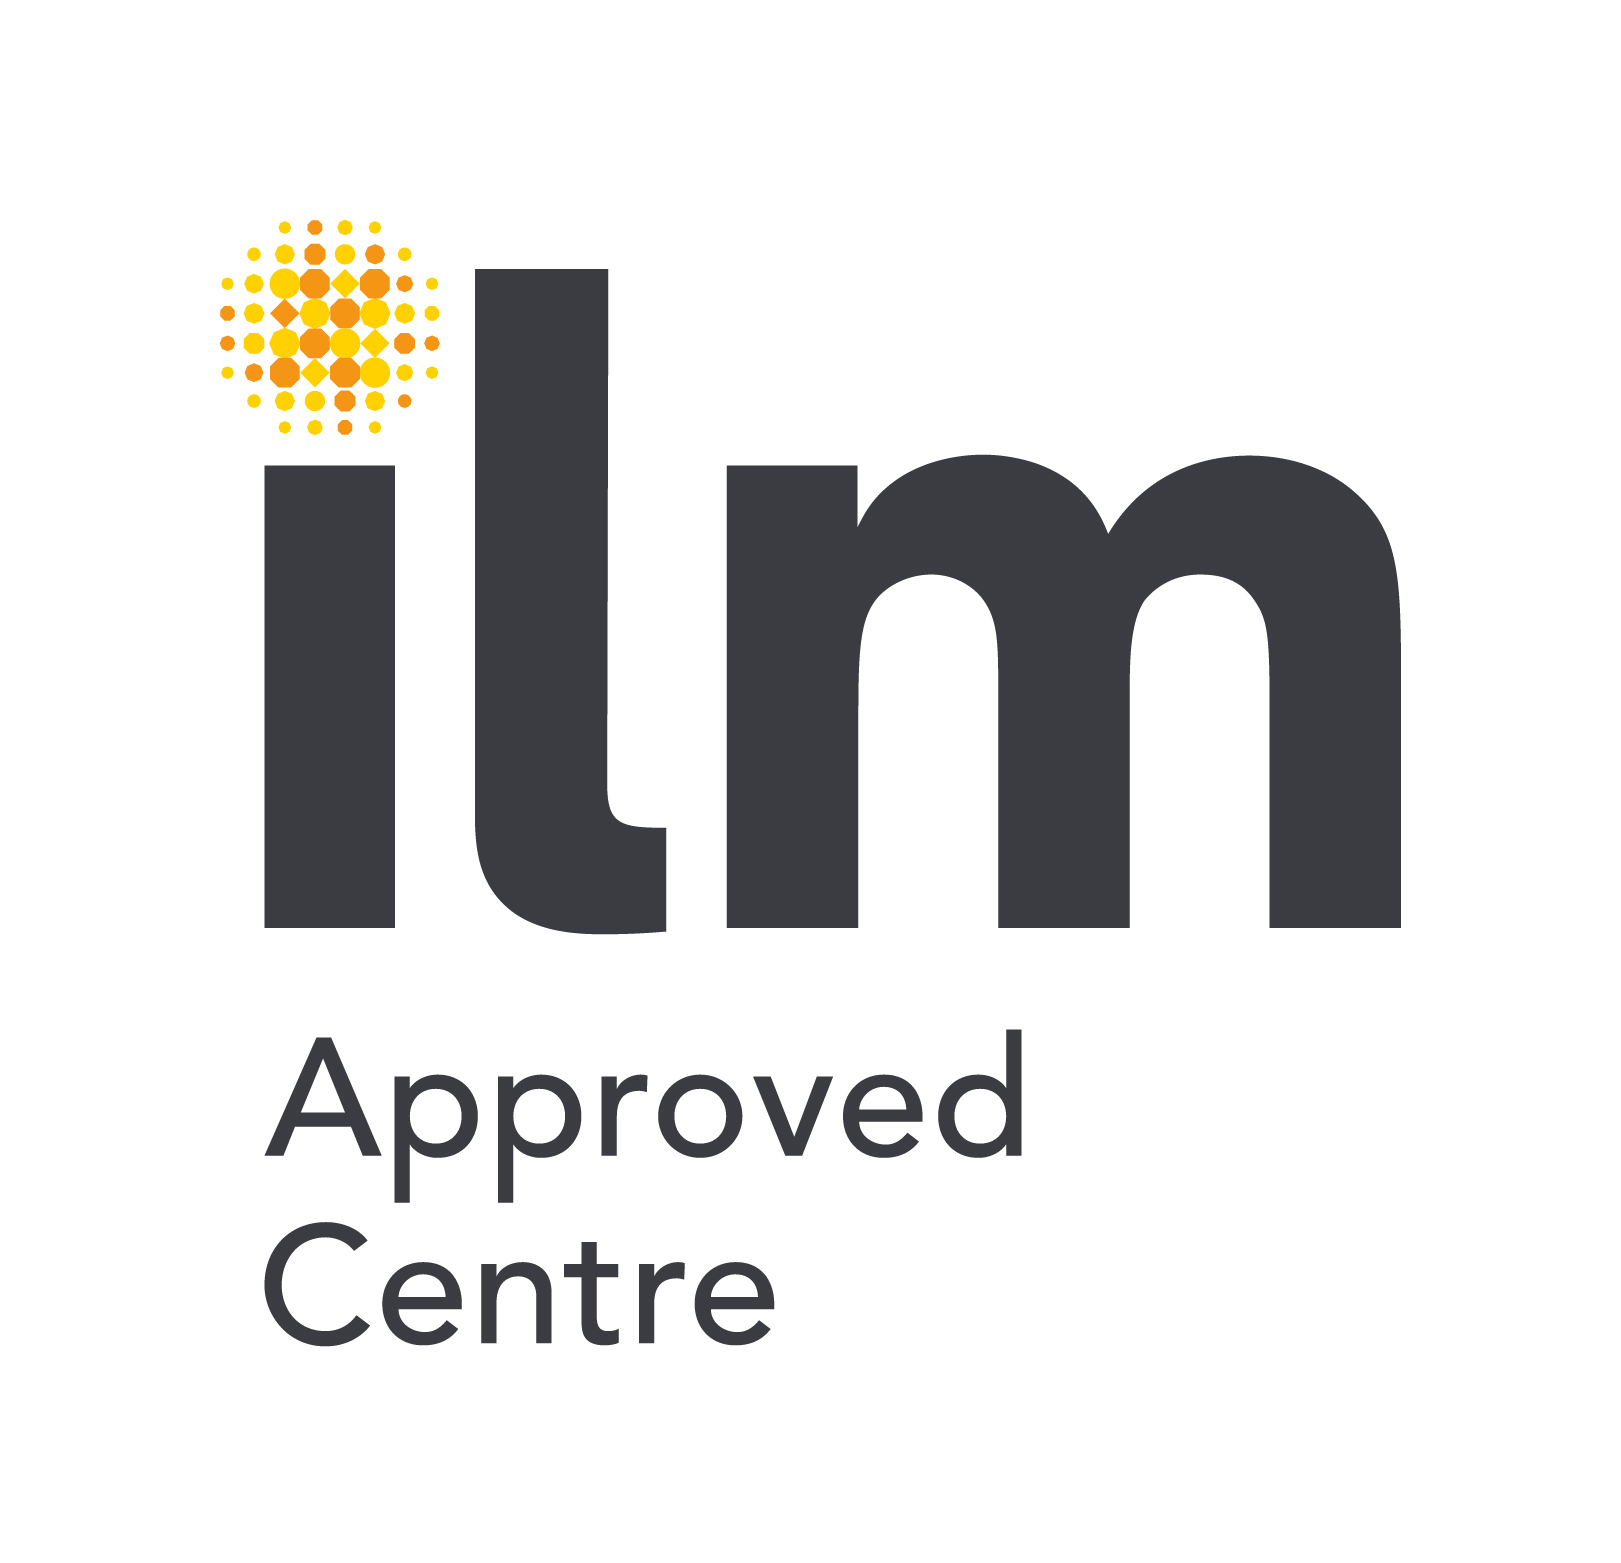 v veer approved center by ilm